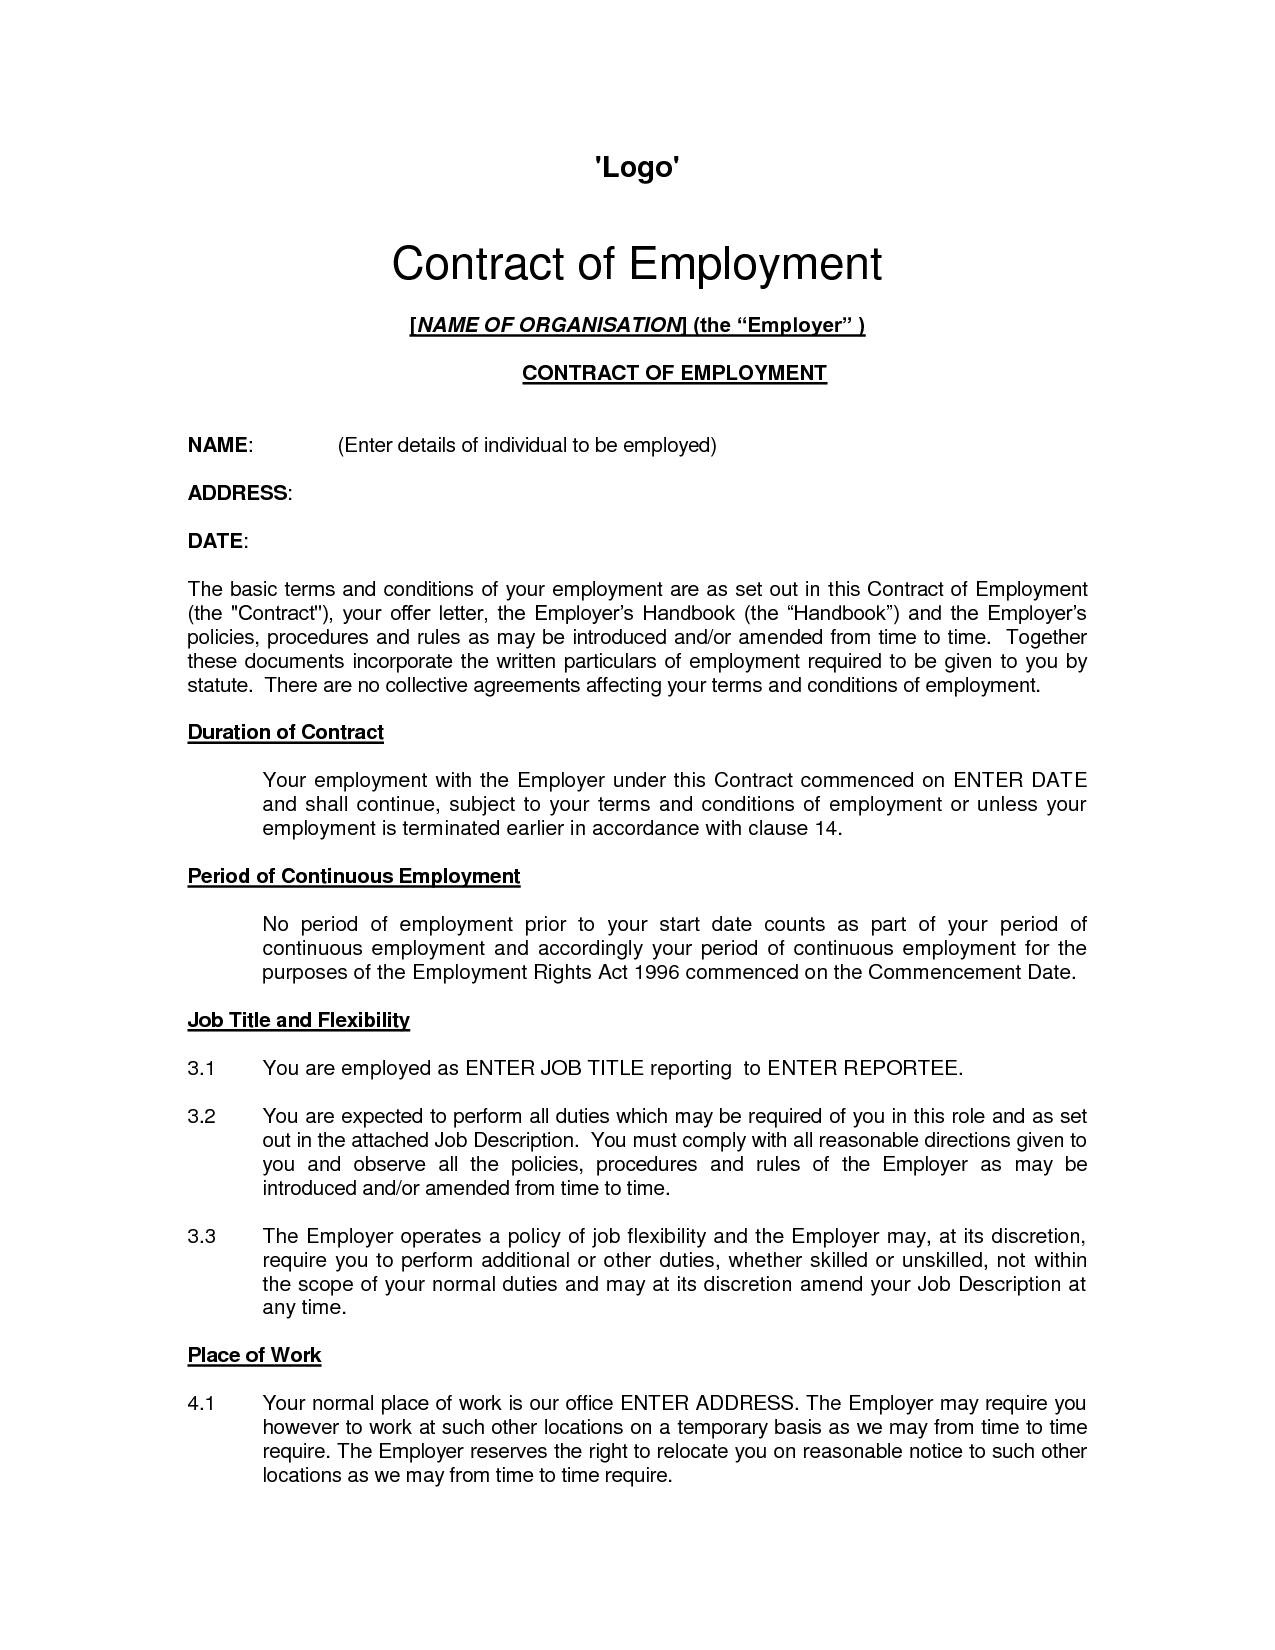 Pin Free Employment Contract Form Template on Pinterest lRz9iUZ8